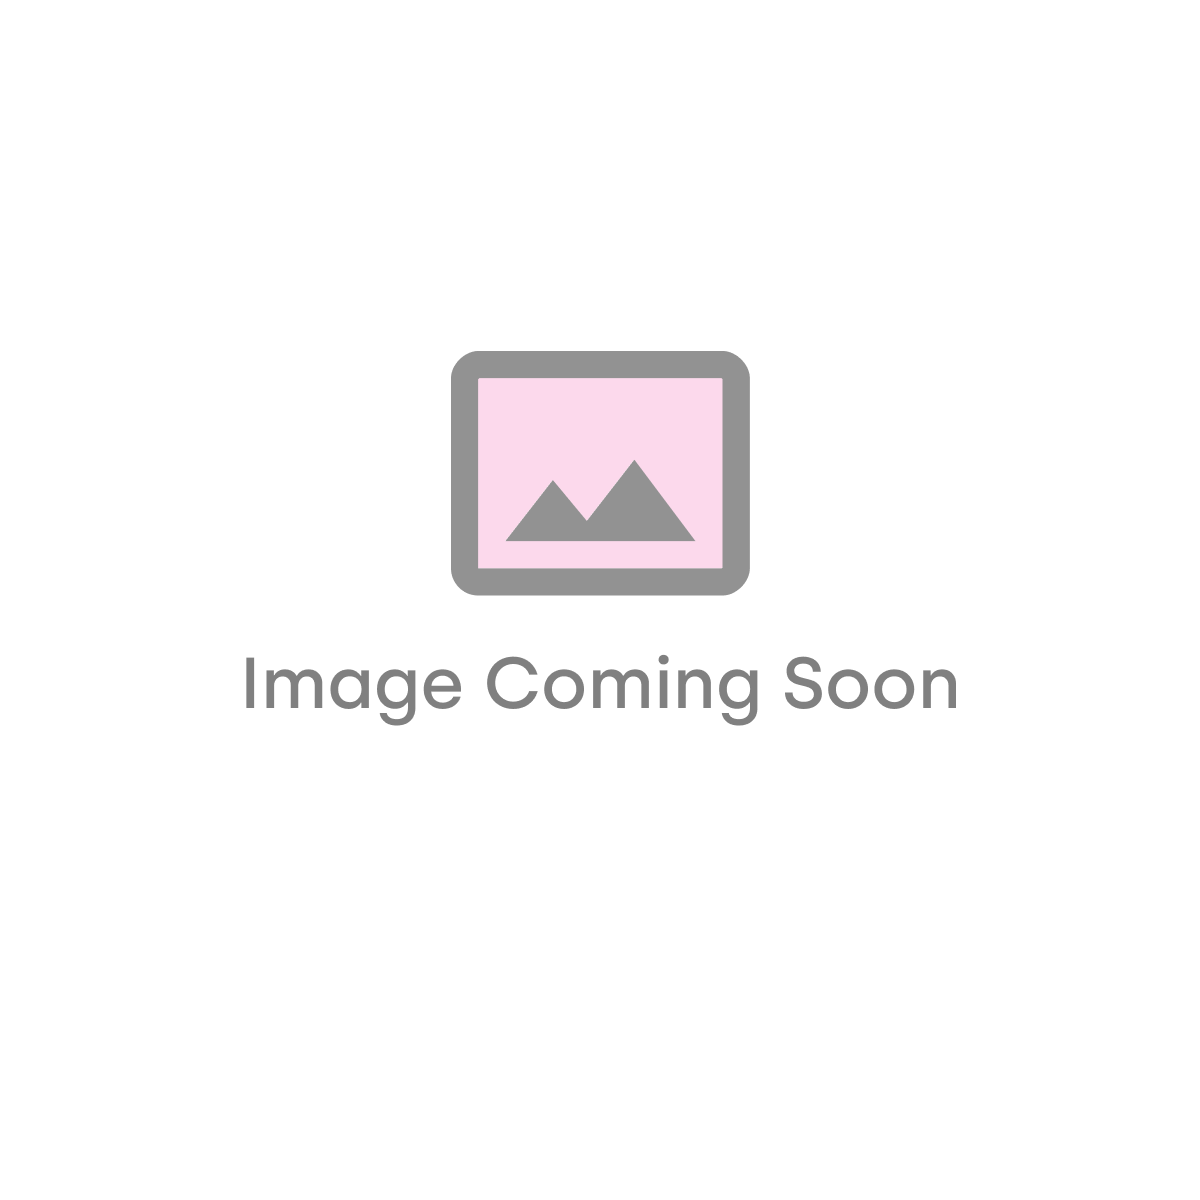 Pergo Premium Click Vinyl Flooring (2.105sqm per pack) - Ecru Mansion Oak - 13918